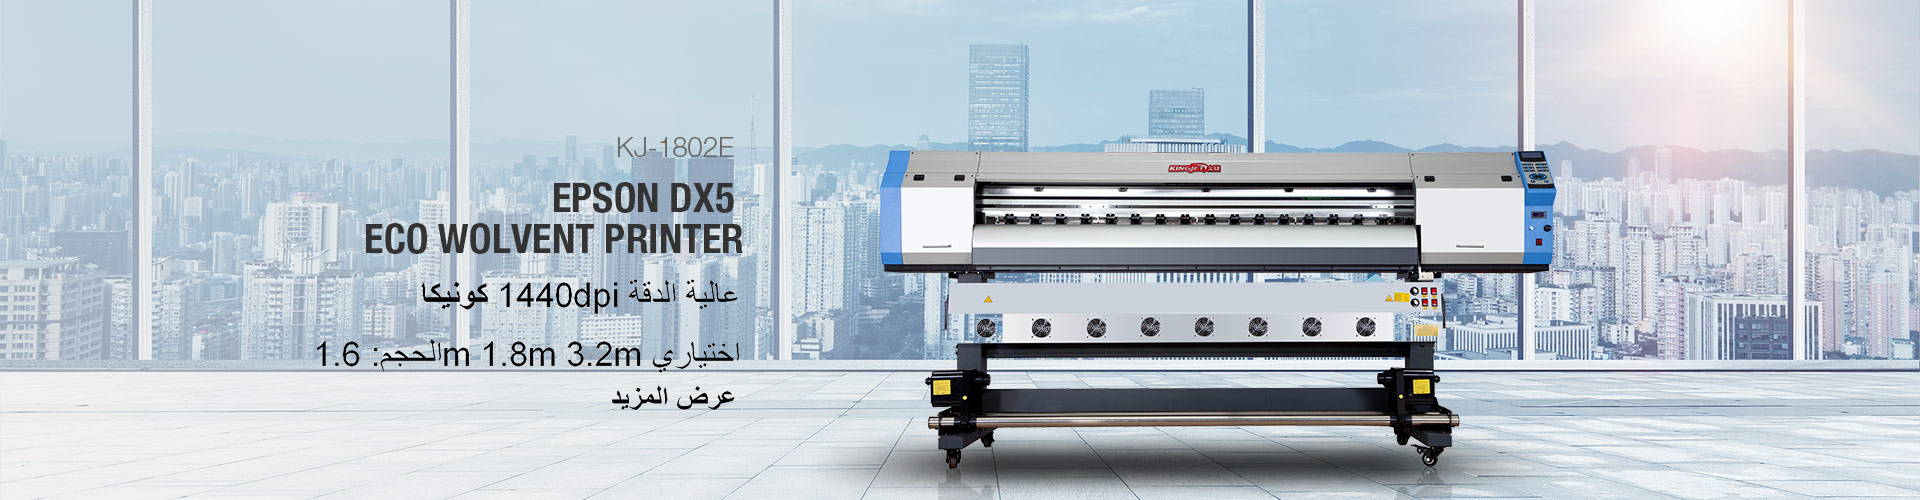 KINGJET DX5 Series Eco Solvent Printer KJ-1802E